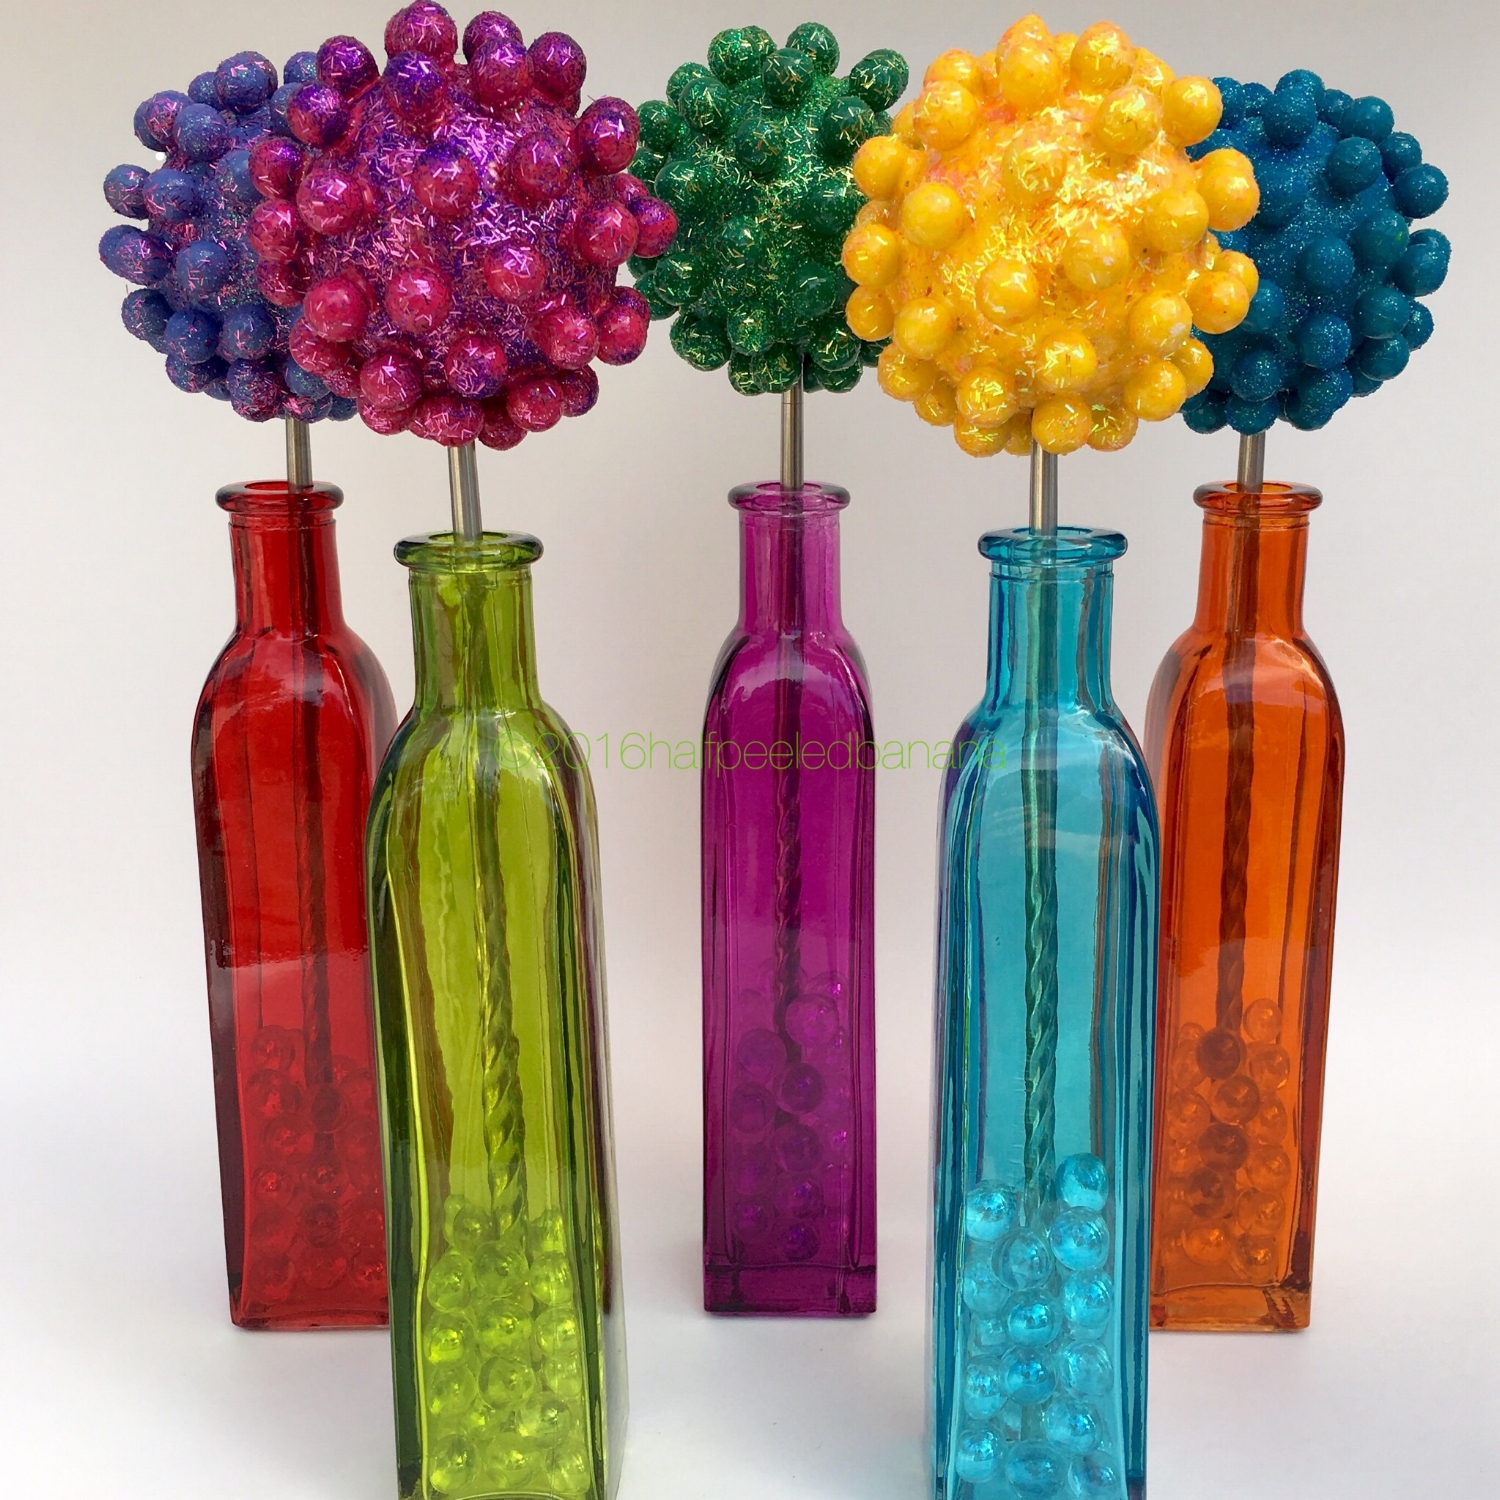 bring on the color! flowers made from map pins!! by ann vanatta gutierrez